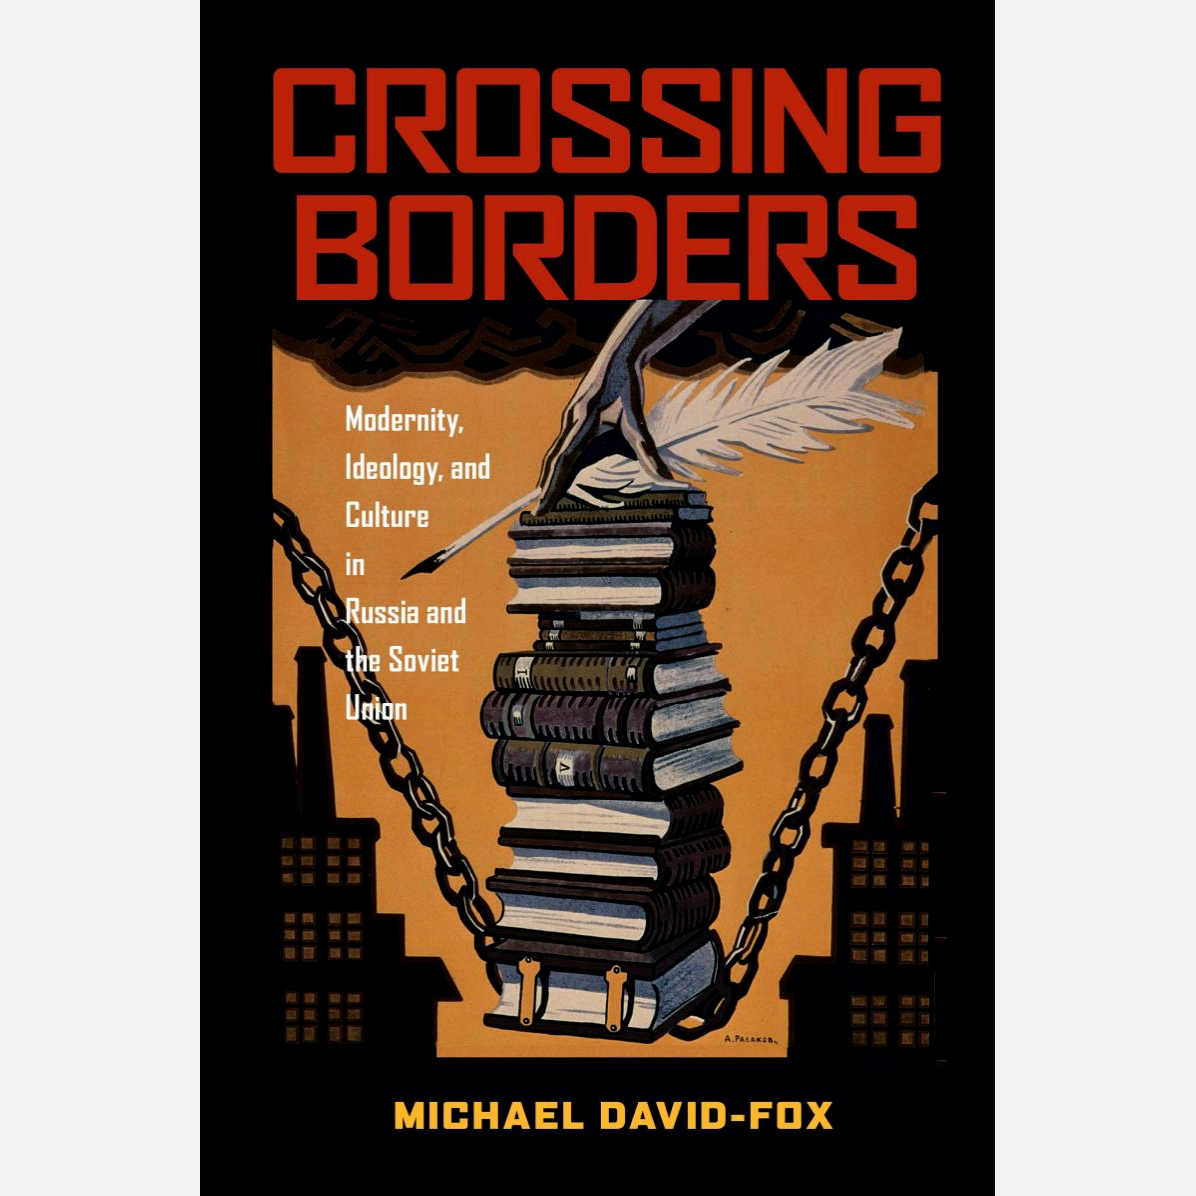 Обложка книги Michael David-Fox «Crossing Borders: Modernity, Ideology, and Culture in Russia and the Soviet Union»